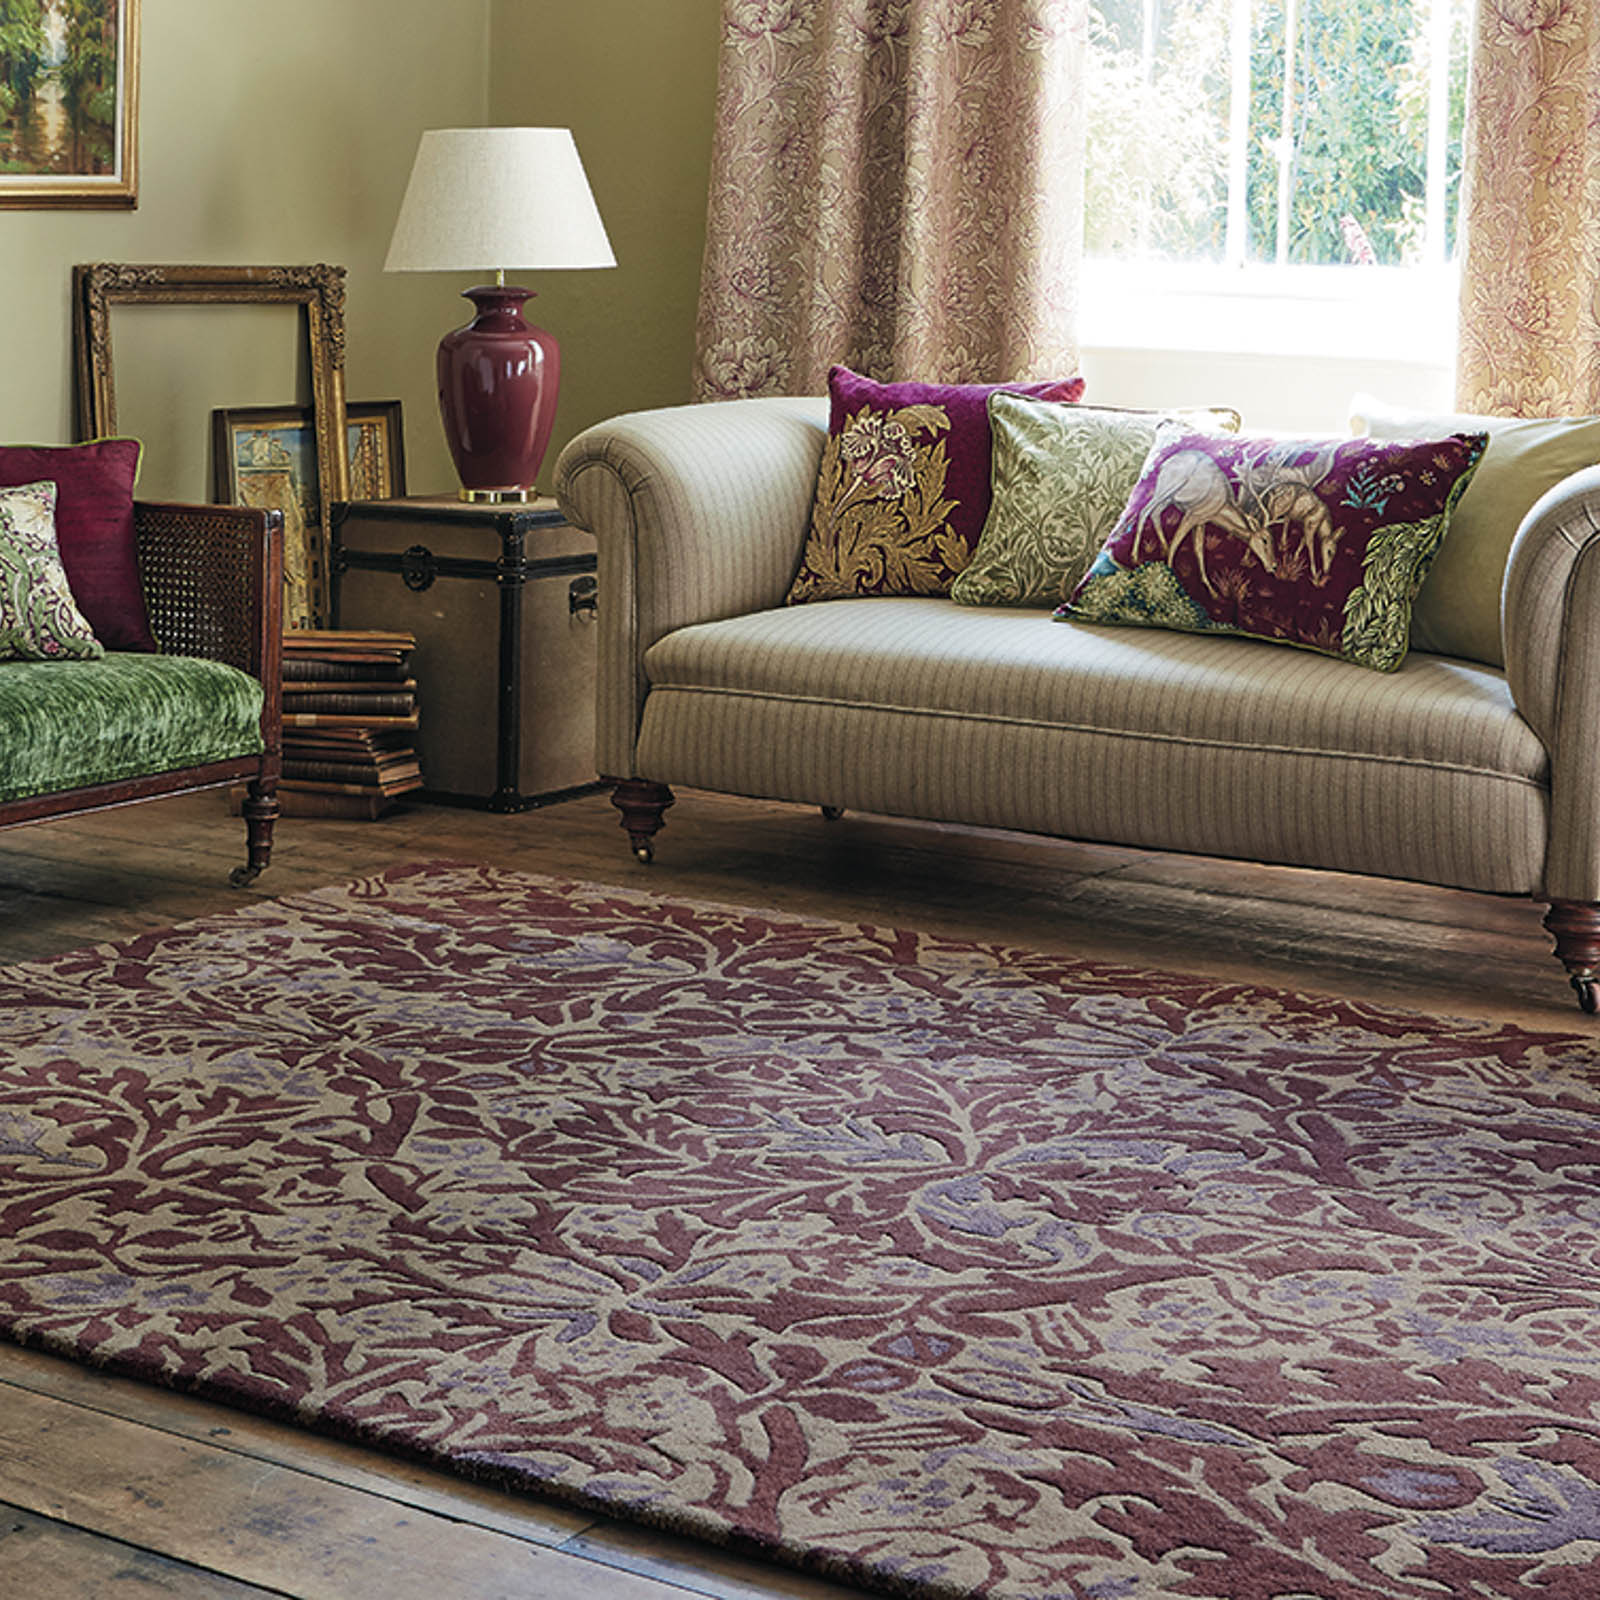 Autumn Flowers Rugs 27500 in Plum by William Morris